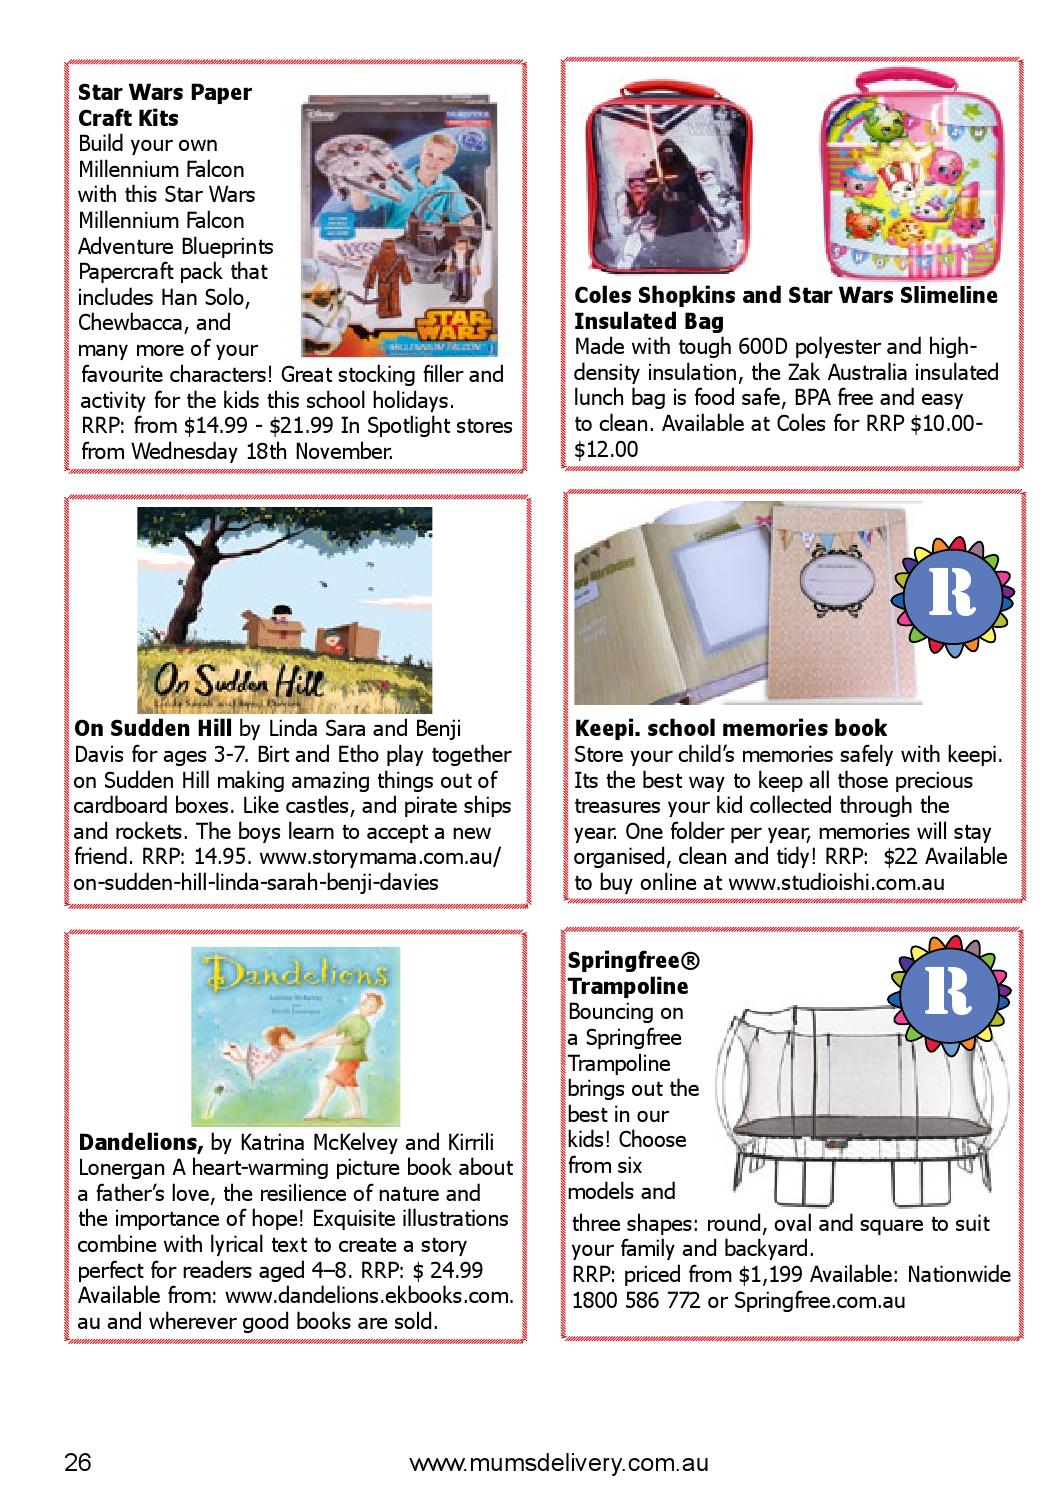 Christmas gift guide 2015 by MumsDelivery - issuu